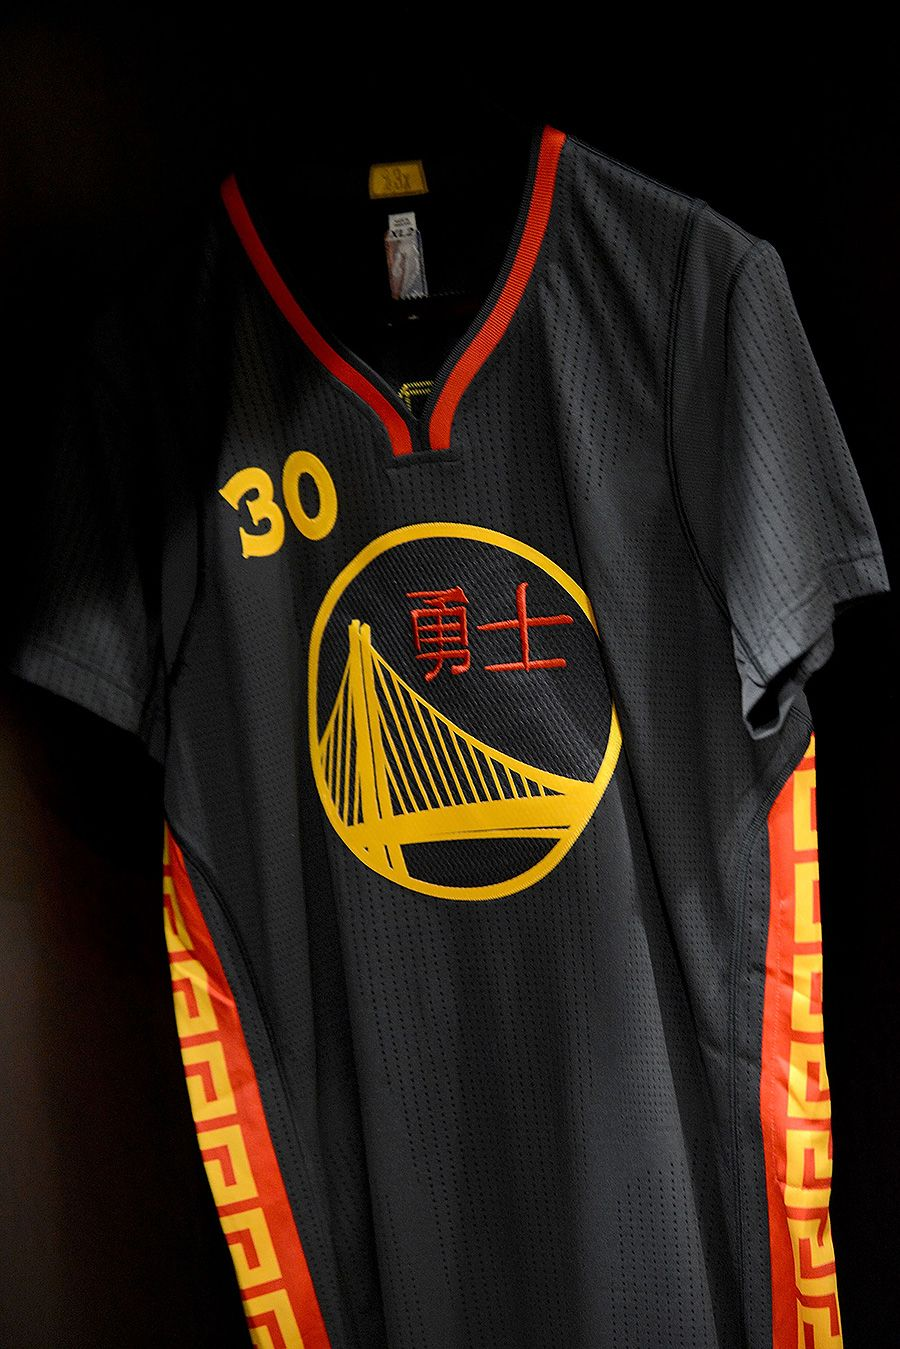 f3b0e8c9893c3 The Warriors  Chinese New Year Uniforms will make their on-court debut on  February 20.